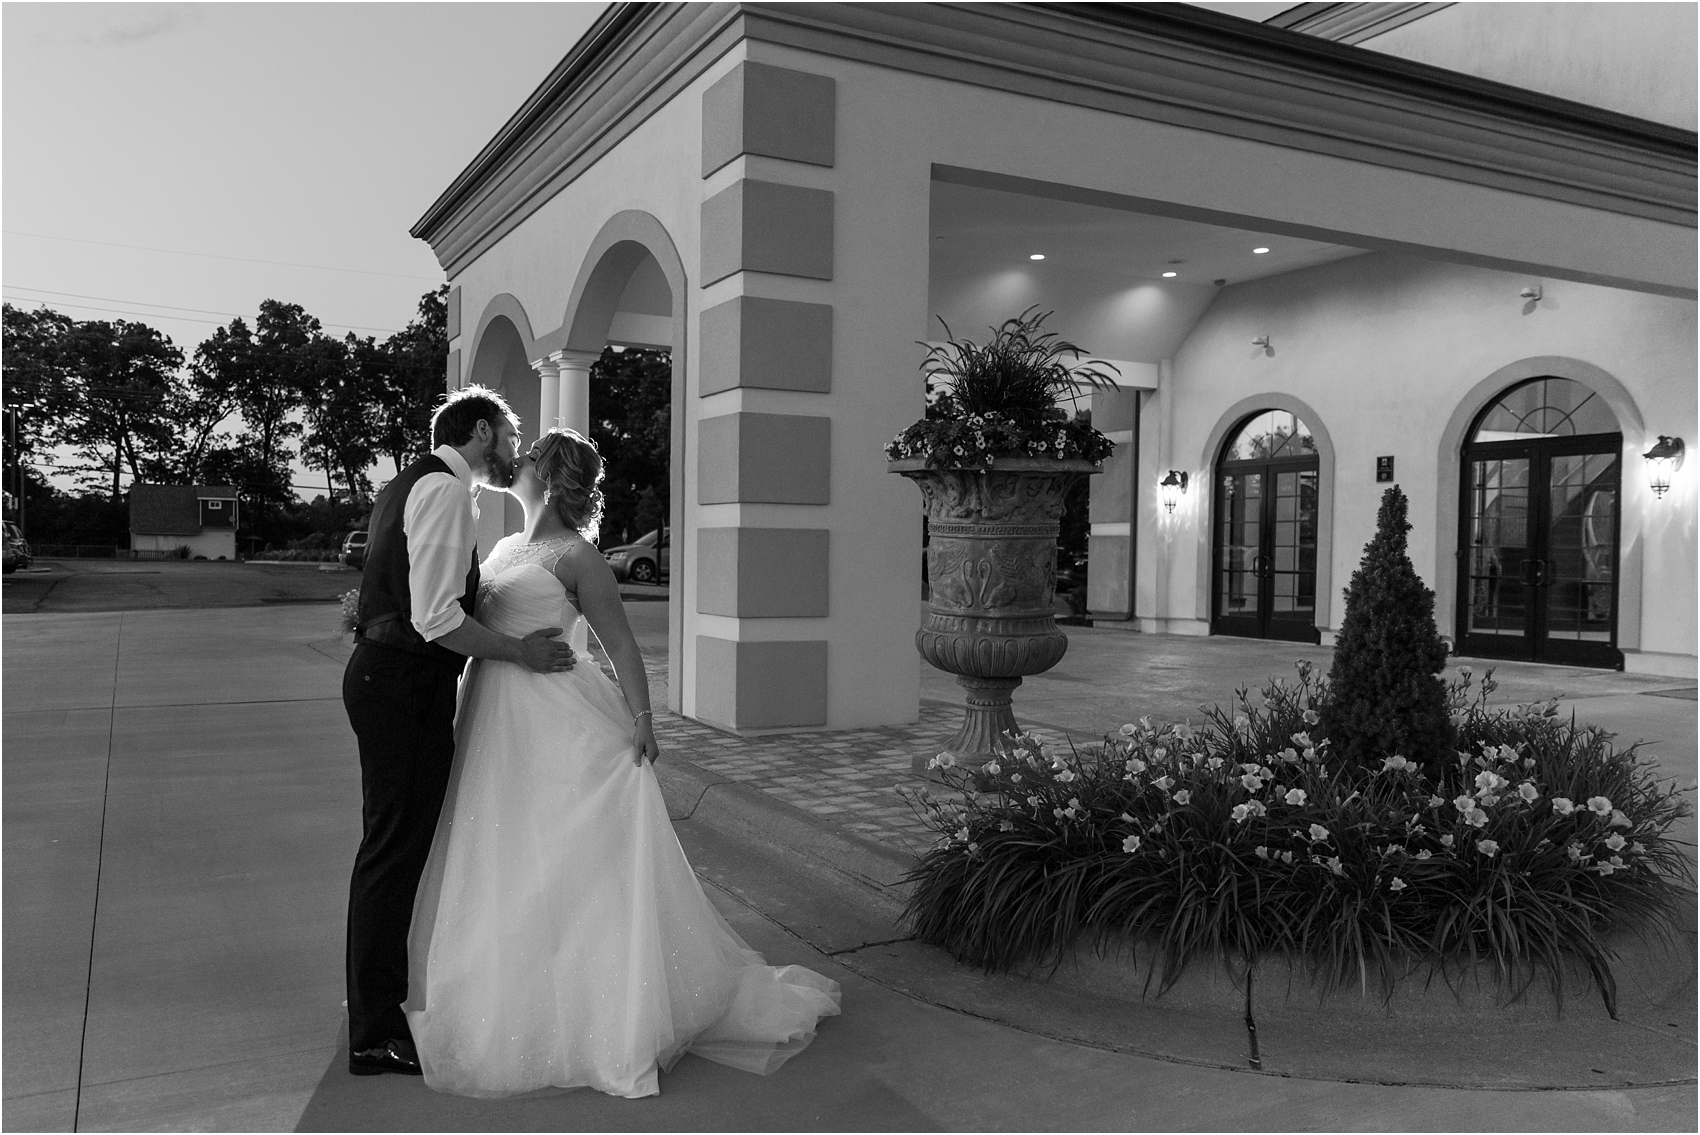 lord-of-the-rings-inspired-wedding-photos-at-crystal-gardens-in-howell-mi-by-courtney-carolyn-photography_0130.jpg